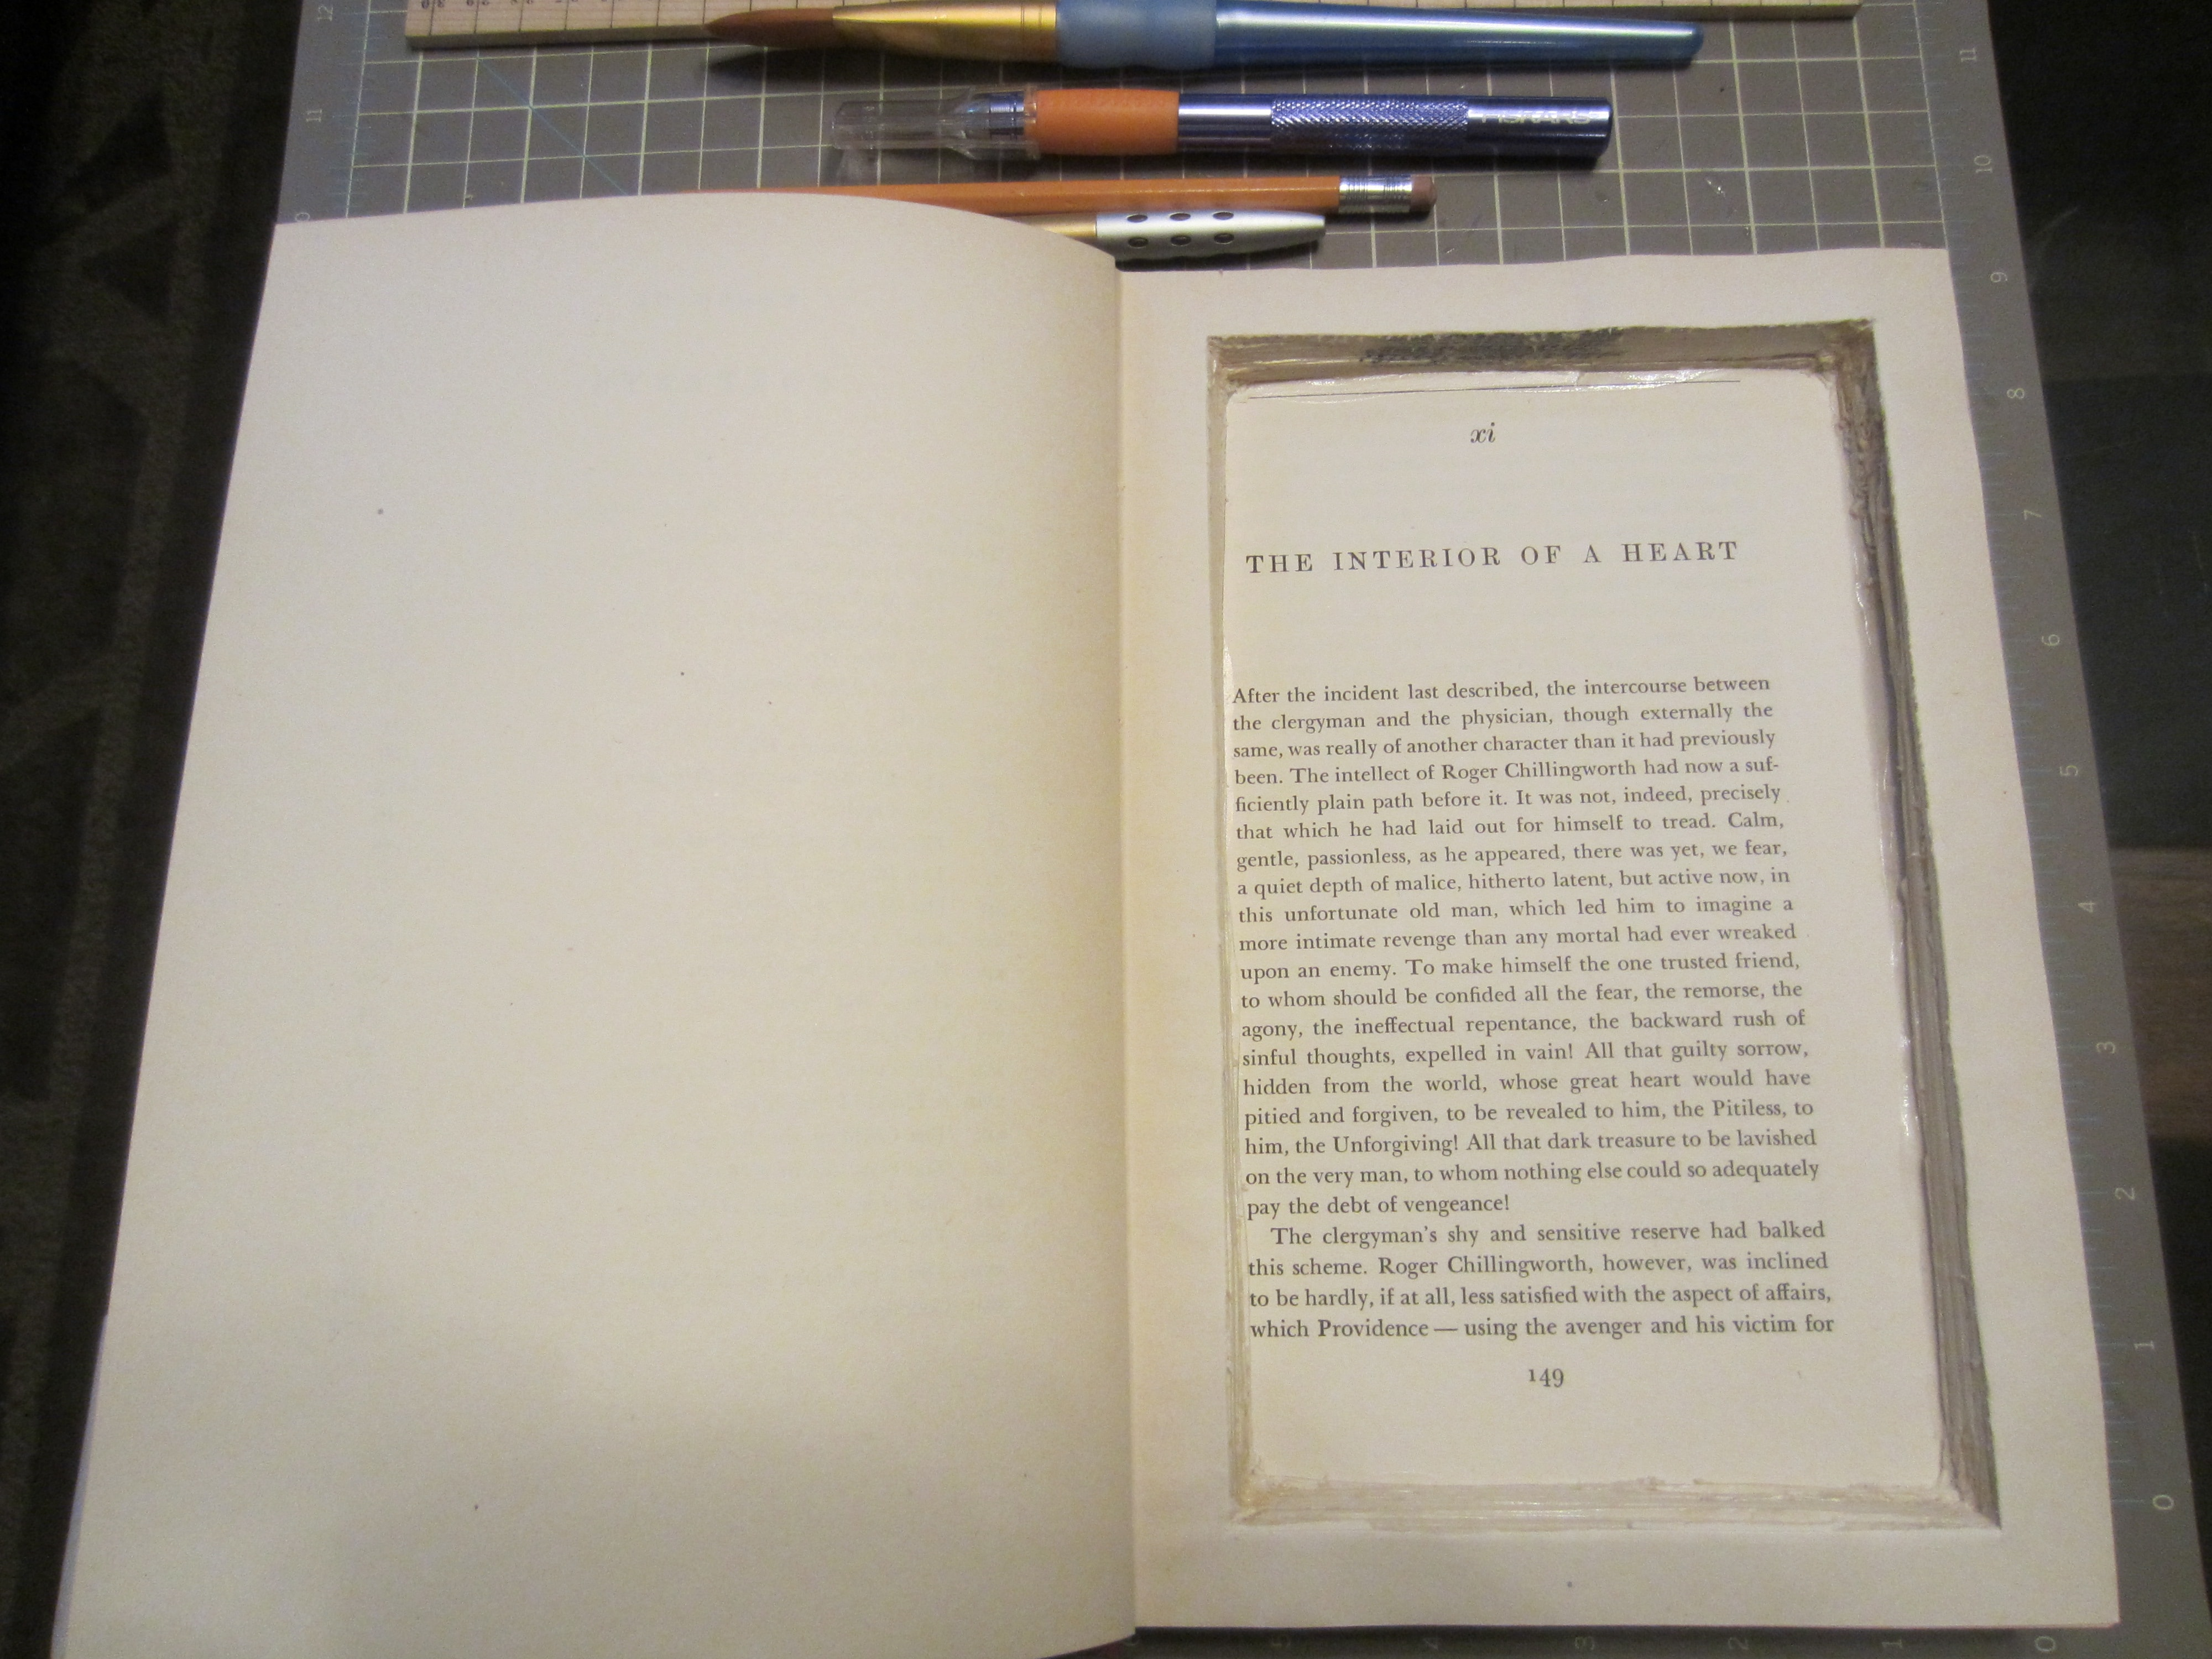 Book Safe How To 3 Diy Inspired